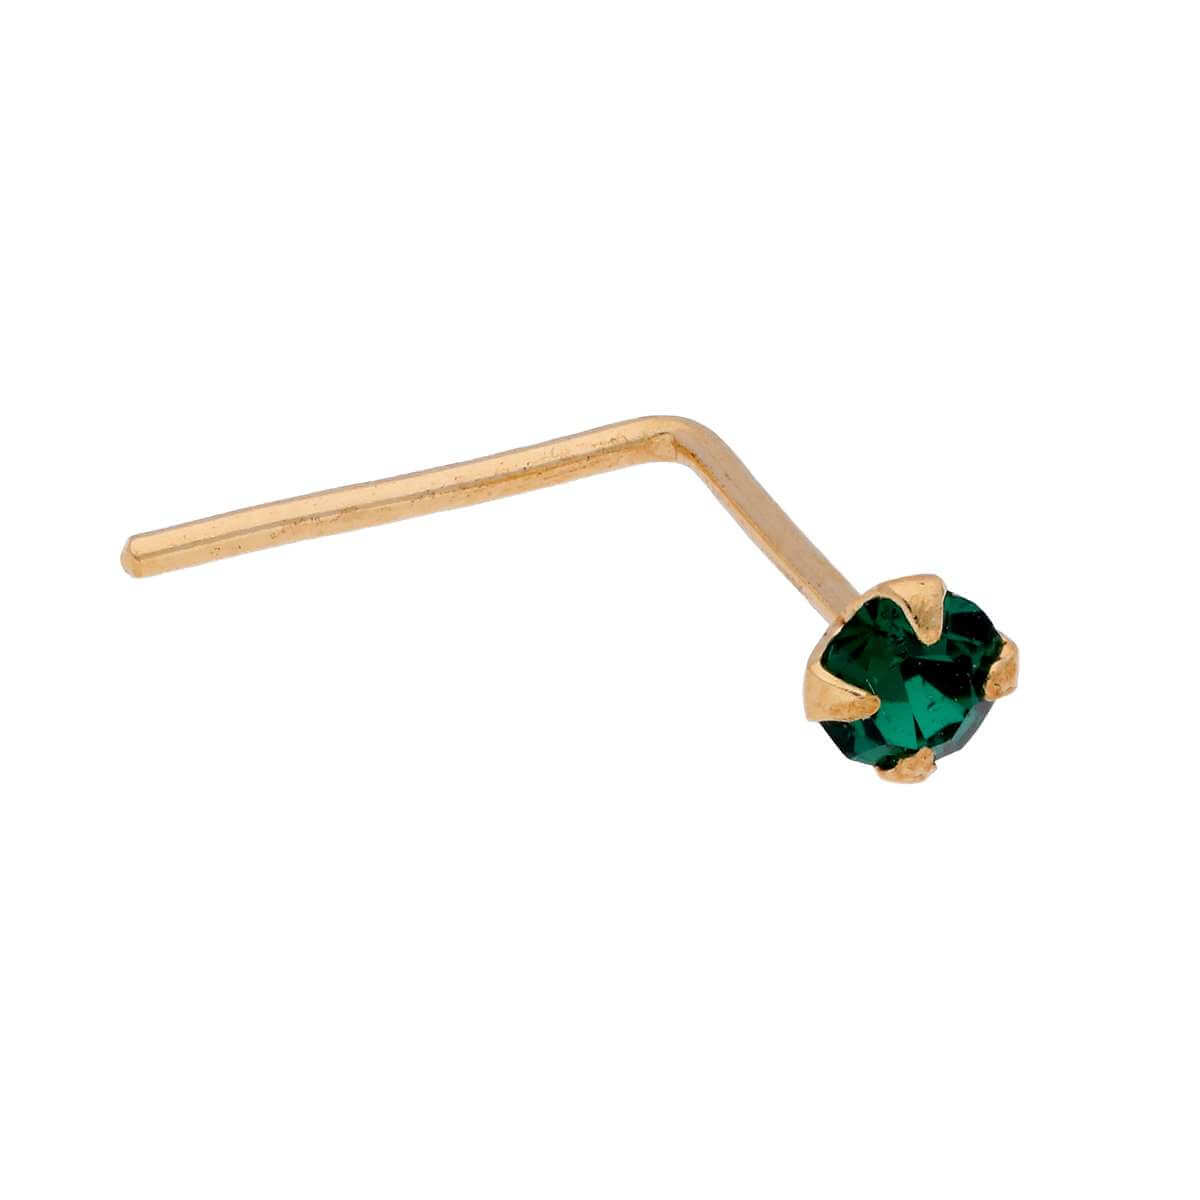 9ct Gold 2mm Emerald Gemstone L-Shaped Nose Stud